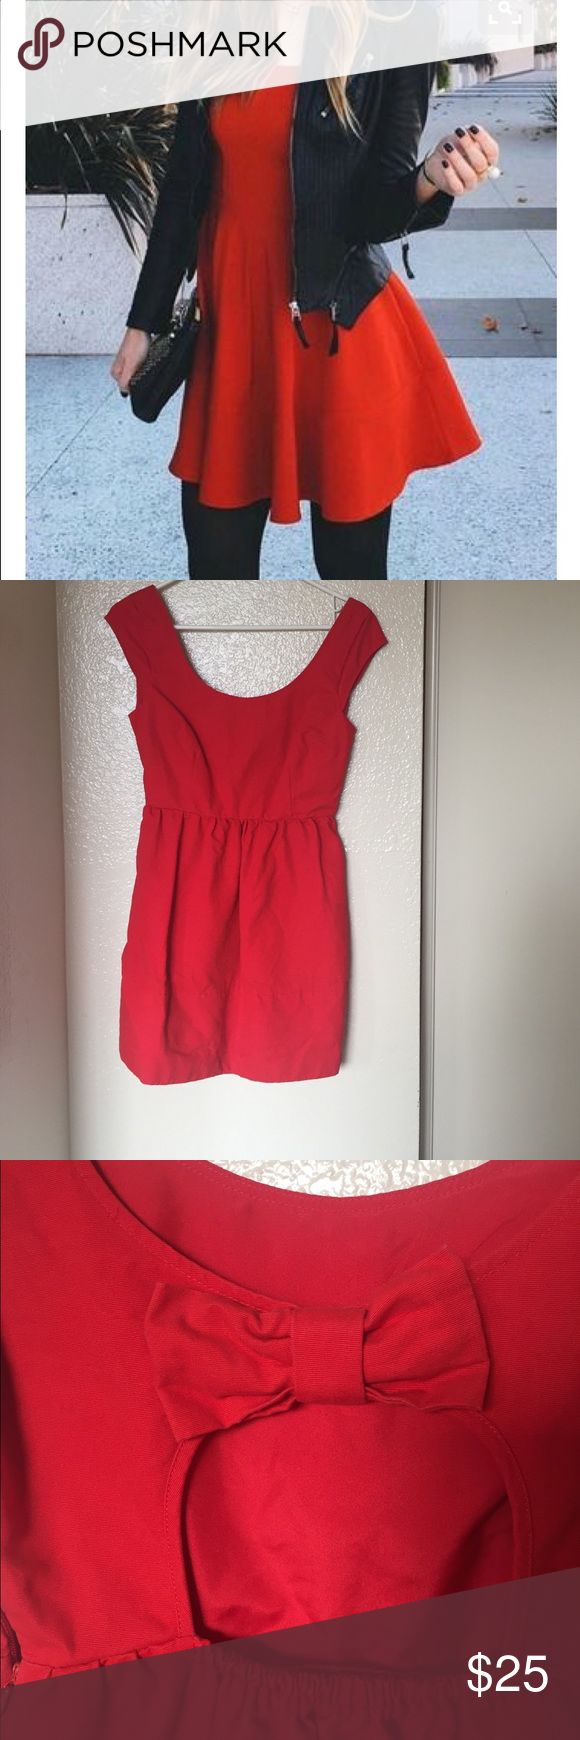 American Eagle outfitters red skater dresse American Eagle outfitters red skater dress with a low bow peekaboo back American Eagle Outfitters Dresses Mini